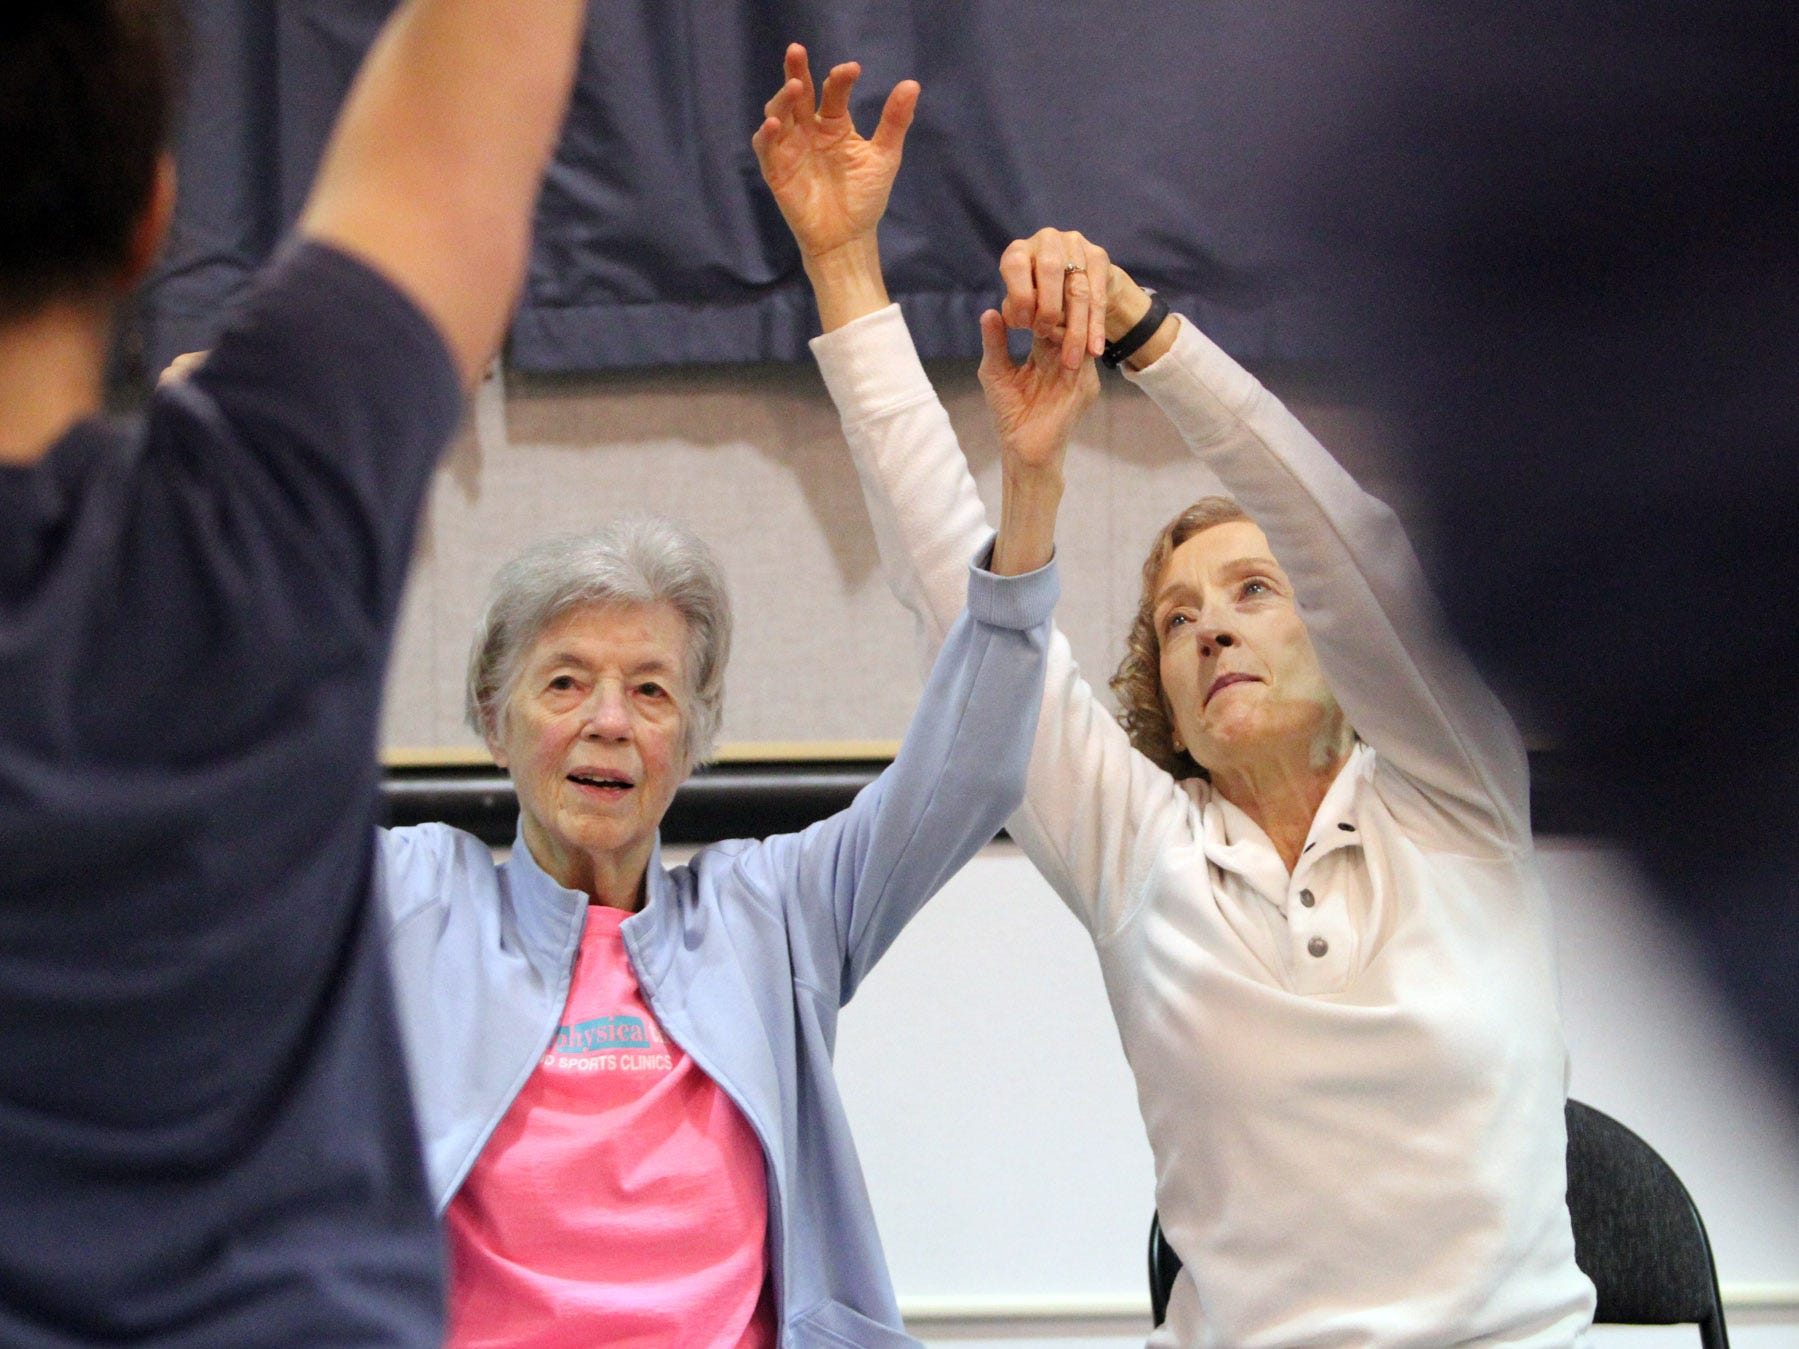 Dance for Parkinson's class at Bainbridge Senior Center.